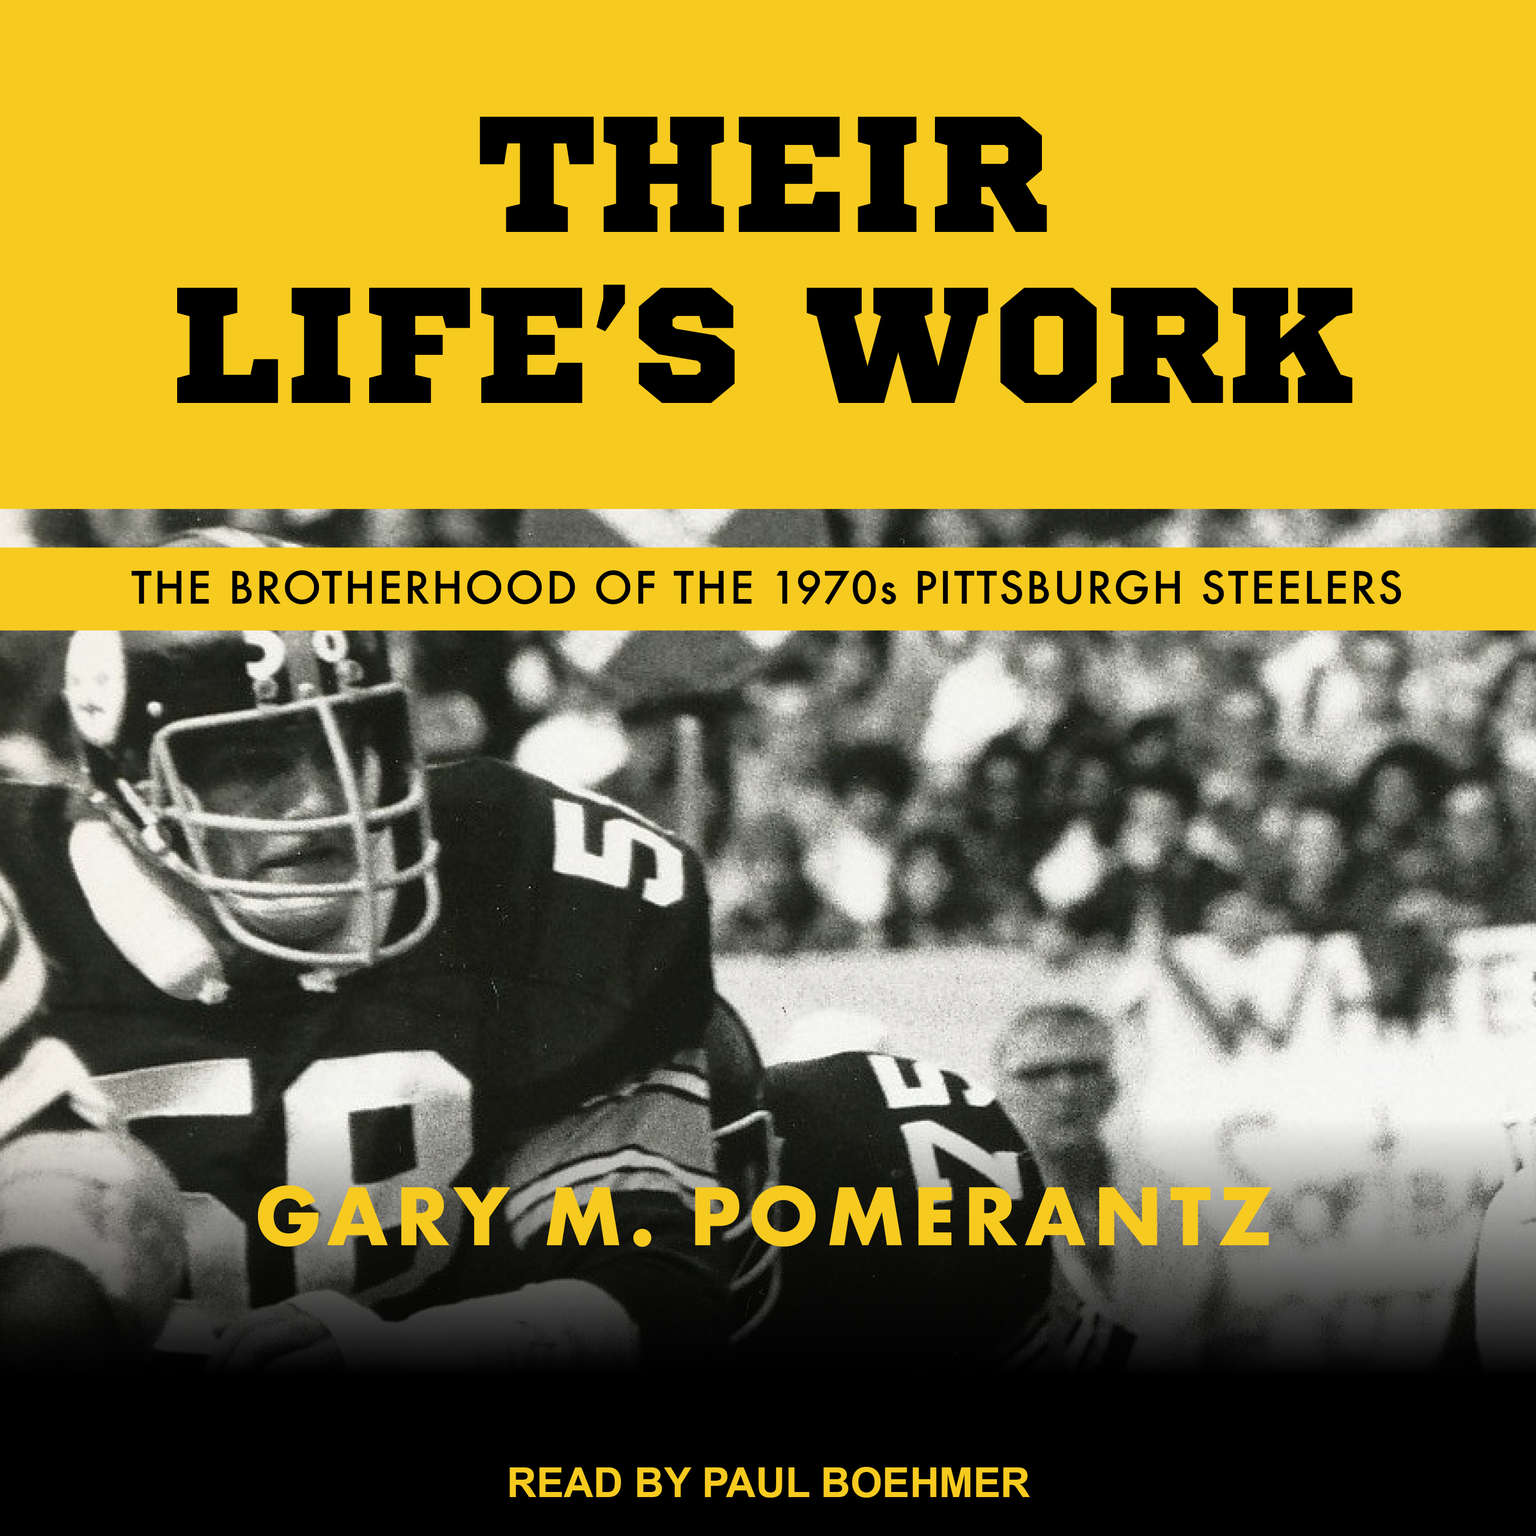 Their Lifes Work: The Brotherhood of the 1970s Pittsburgh Steelers Audiobook, by Gary M. Pomerantz